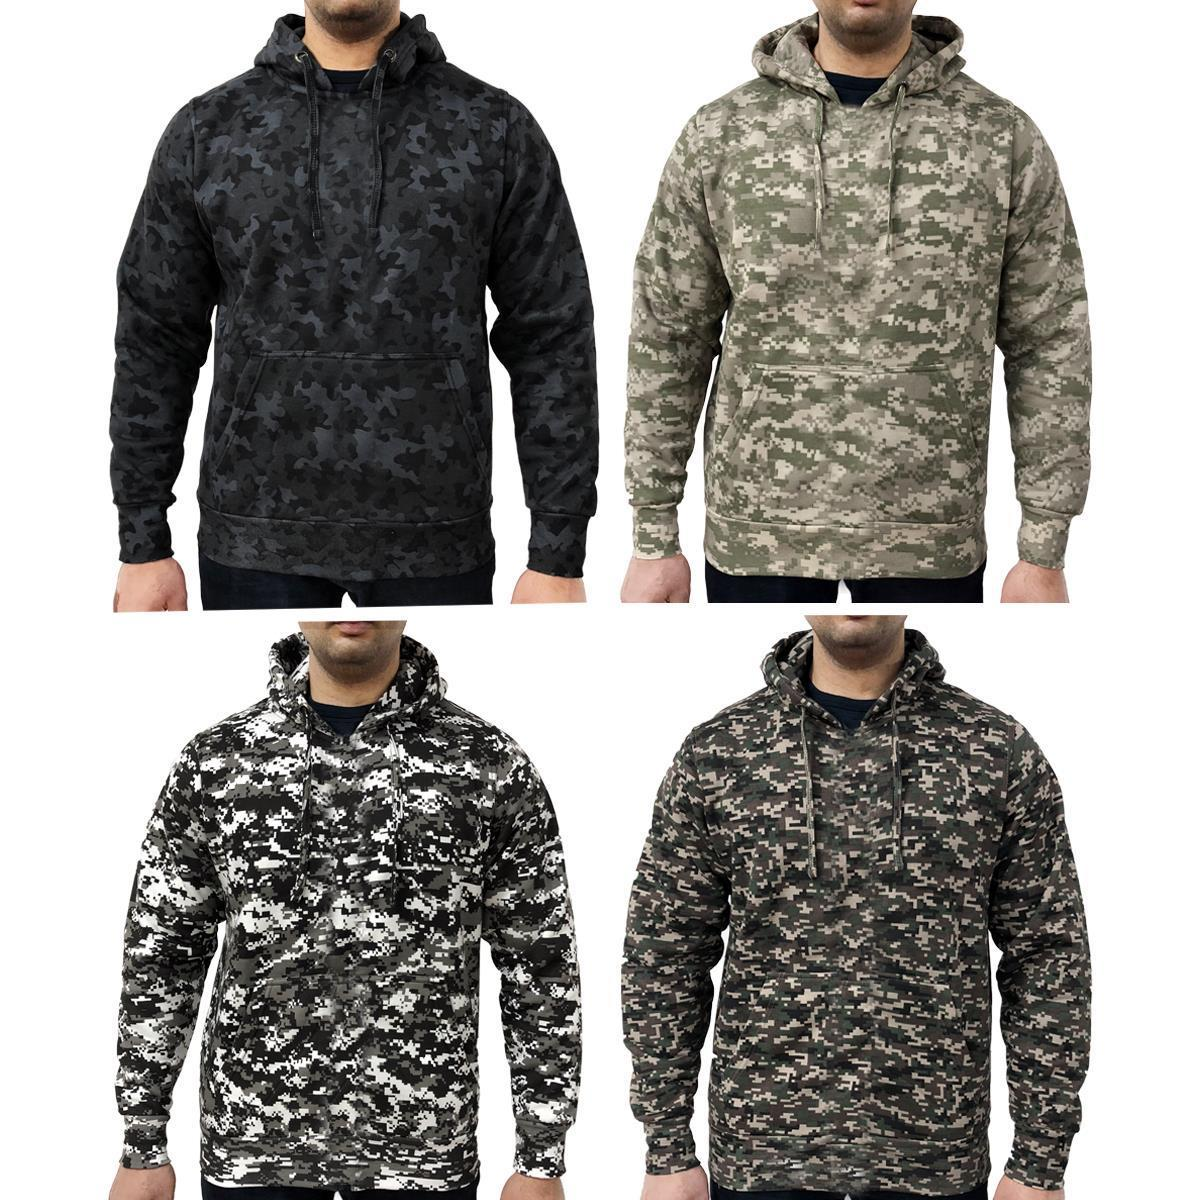 Camo Hoodie Friends Details About Game Mens Military Camo Hoodie Digital Camouflage Hooded Top